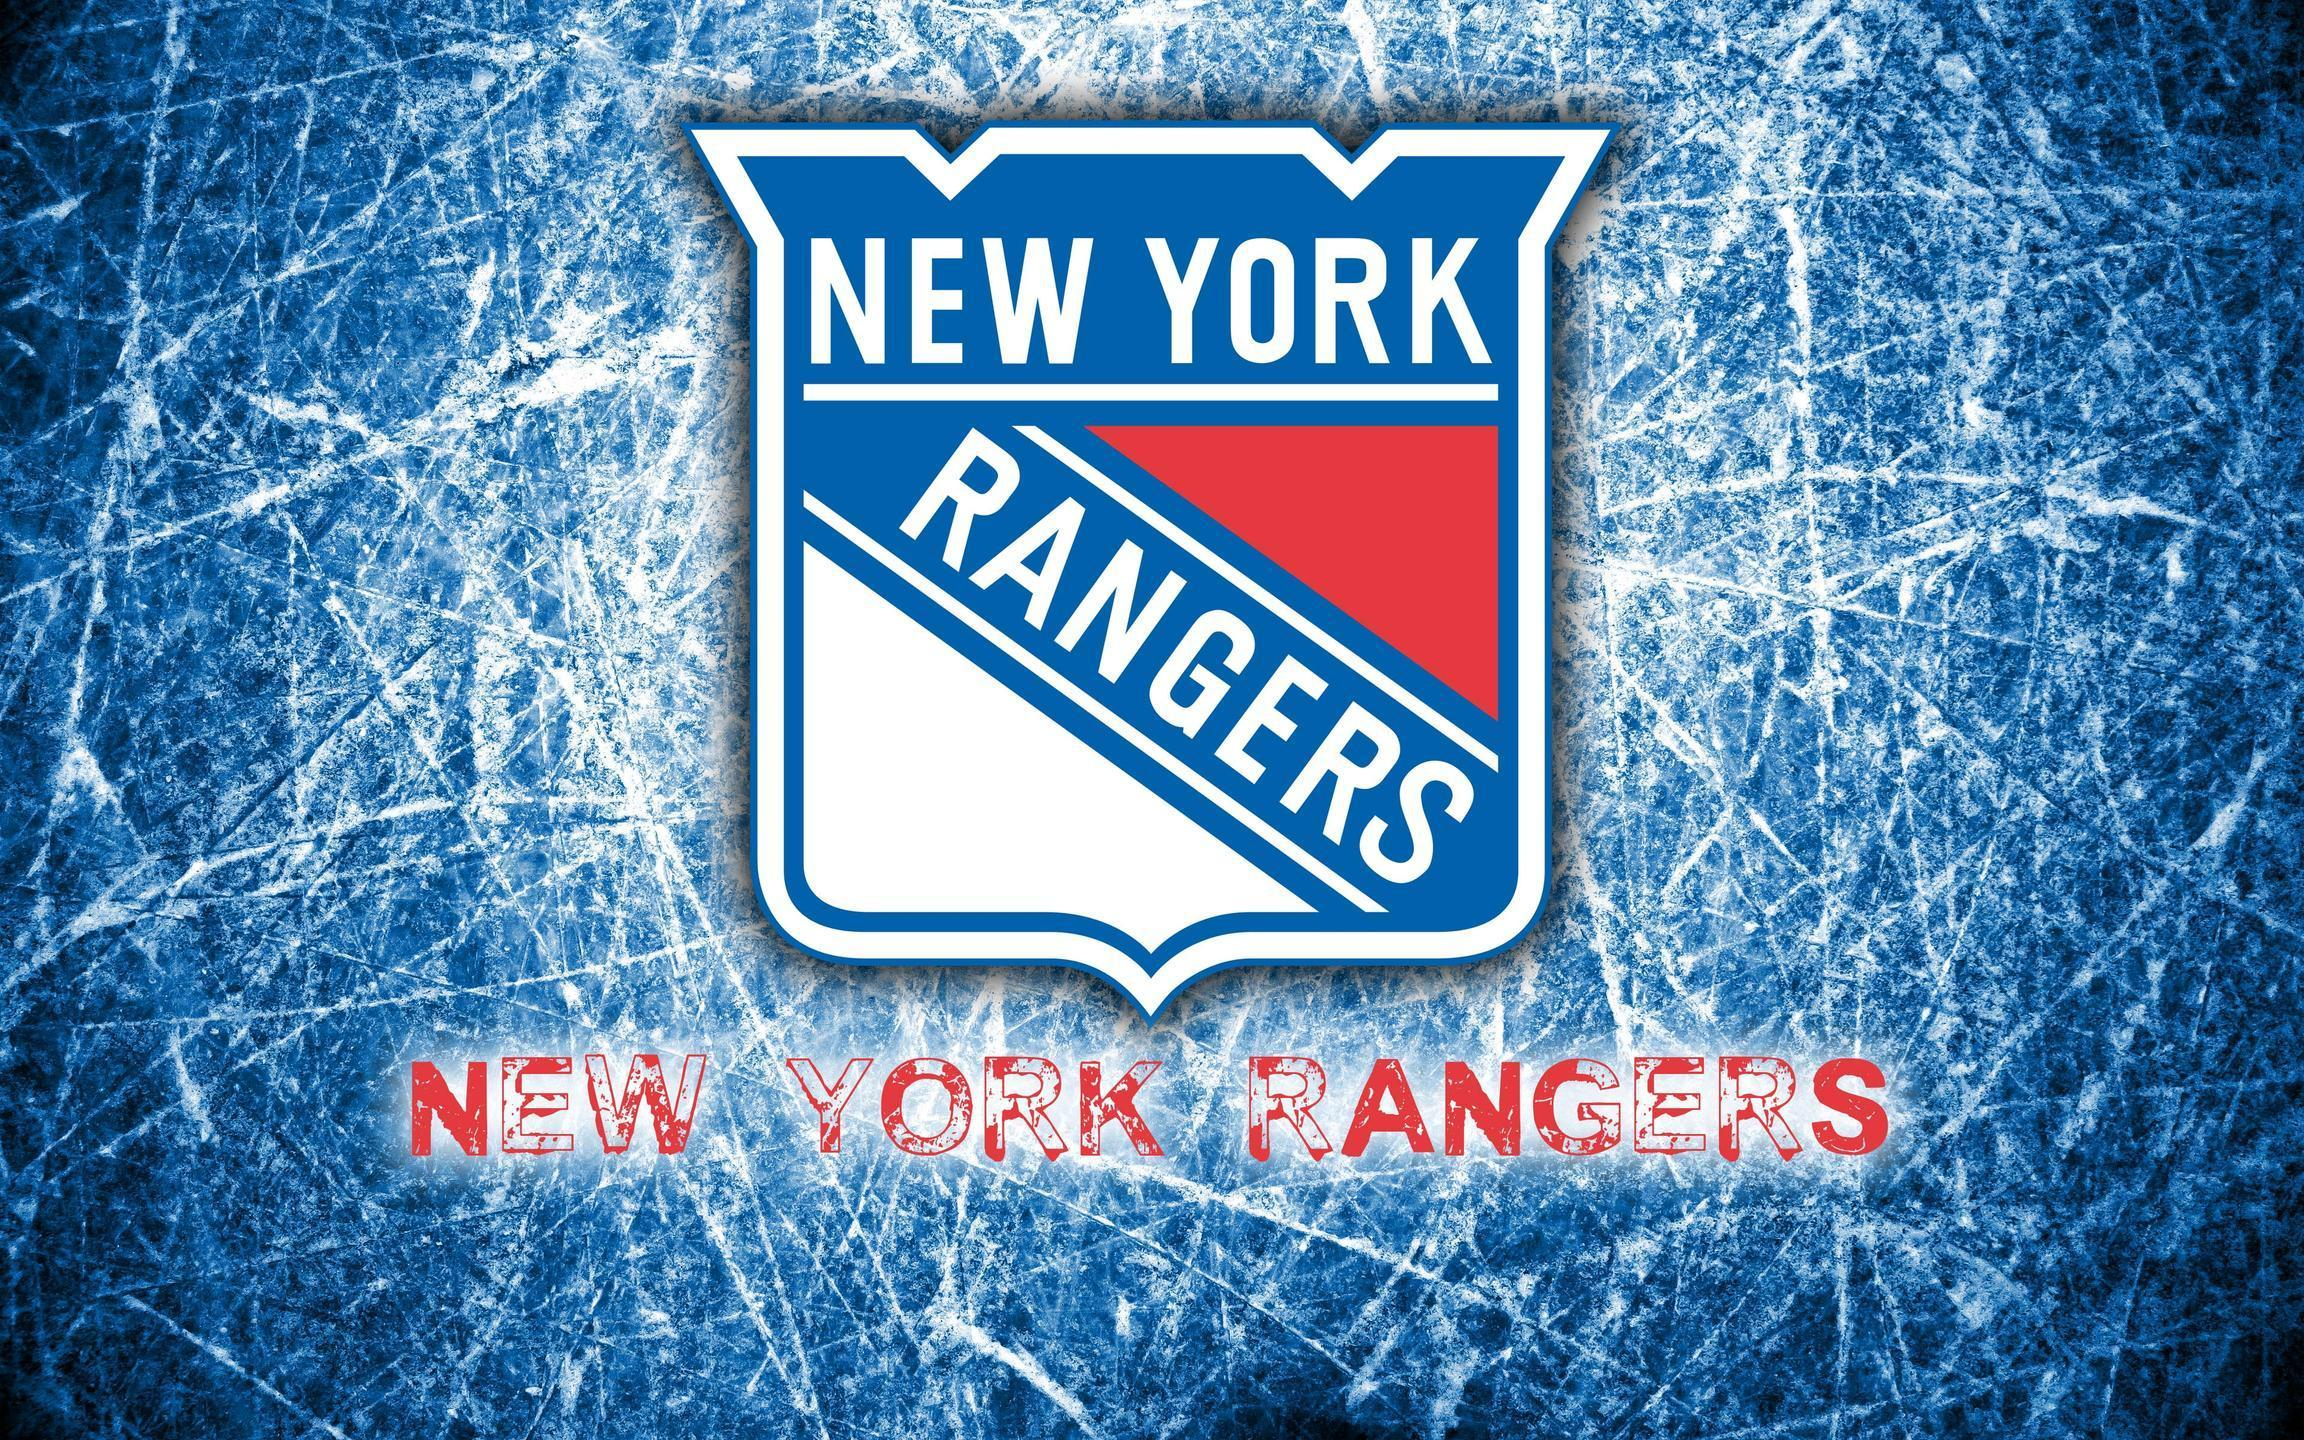 New York Rangers 2014 Logo Wallpaper Wide Or HD